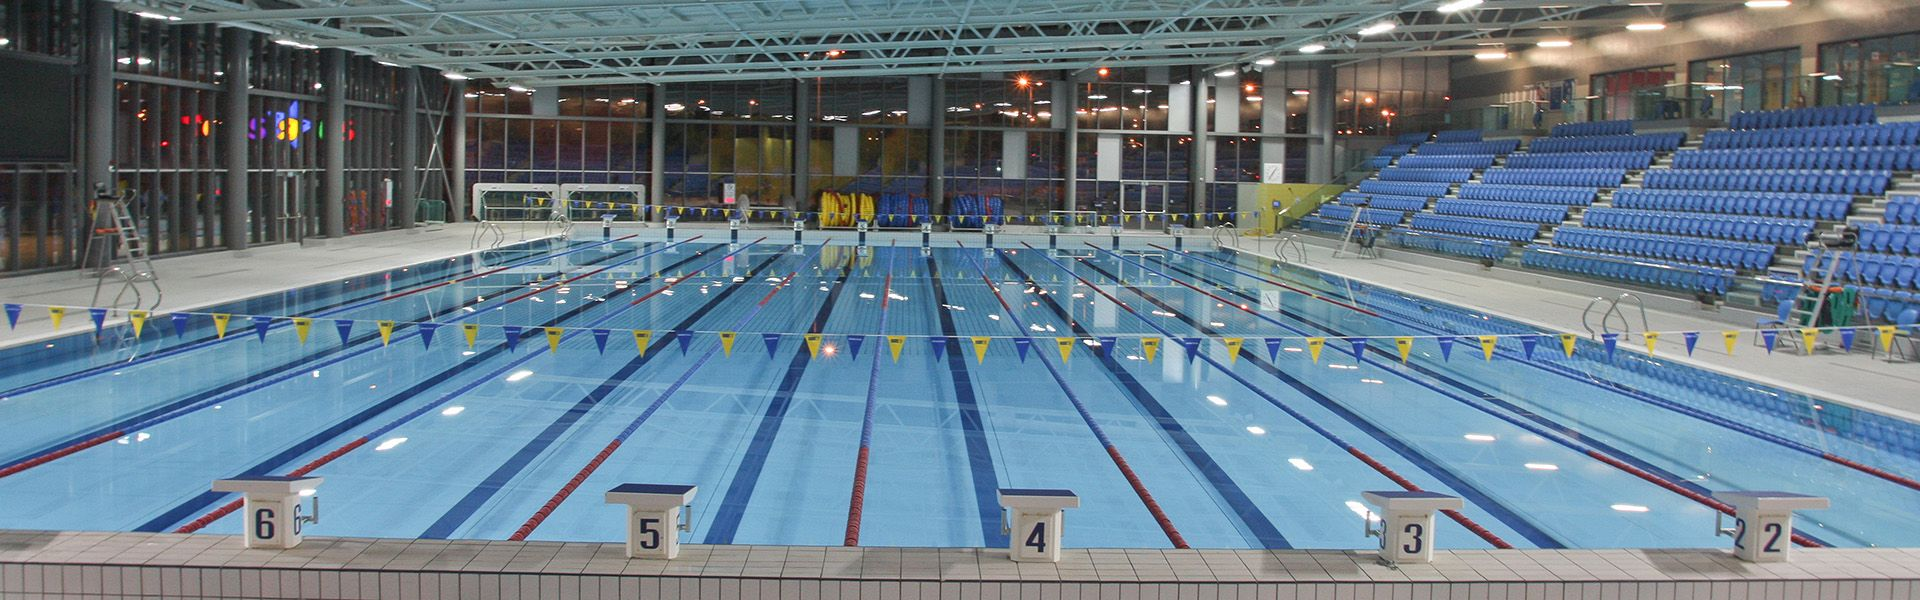 cardiff international pool located in the heart of cardiff bay we are a modern facility offering an impressive olympic swimming pool ive swam here